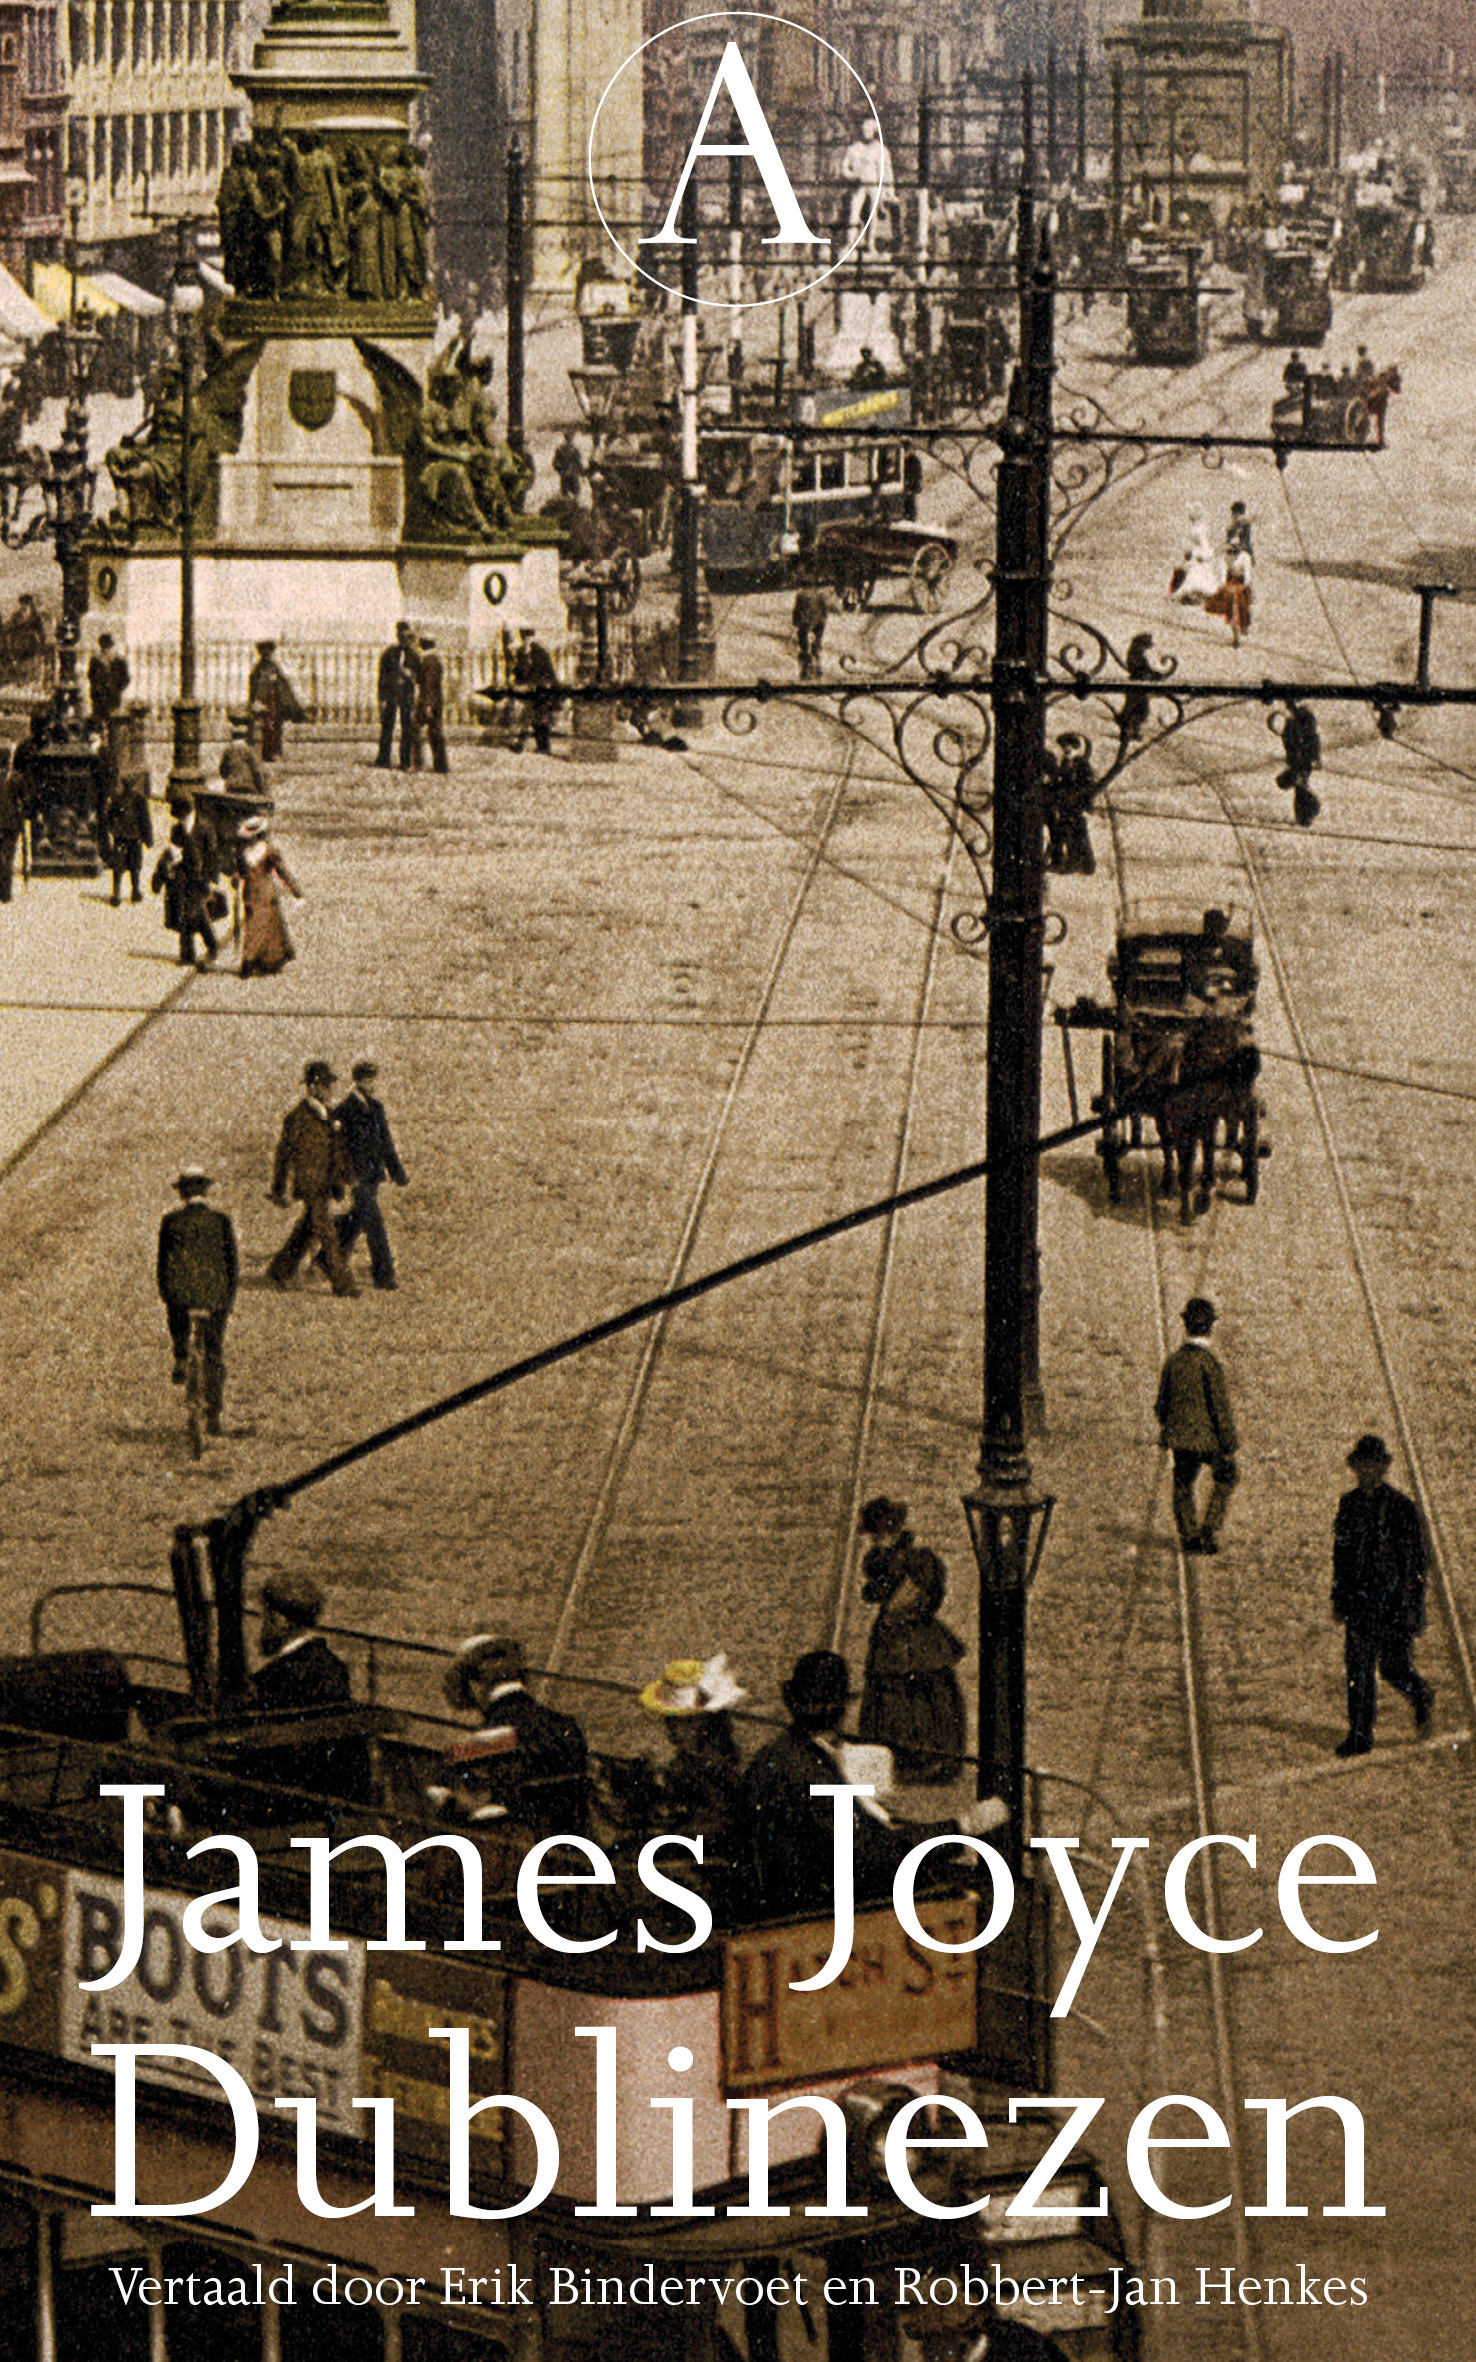 Dublinezen – James Joyce